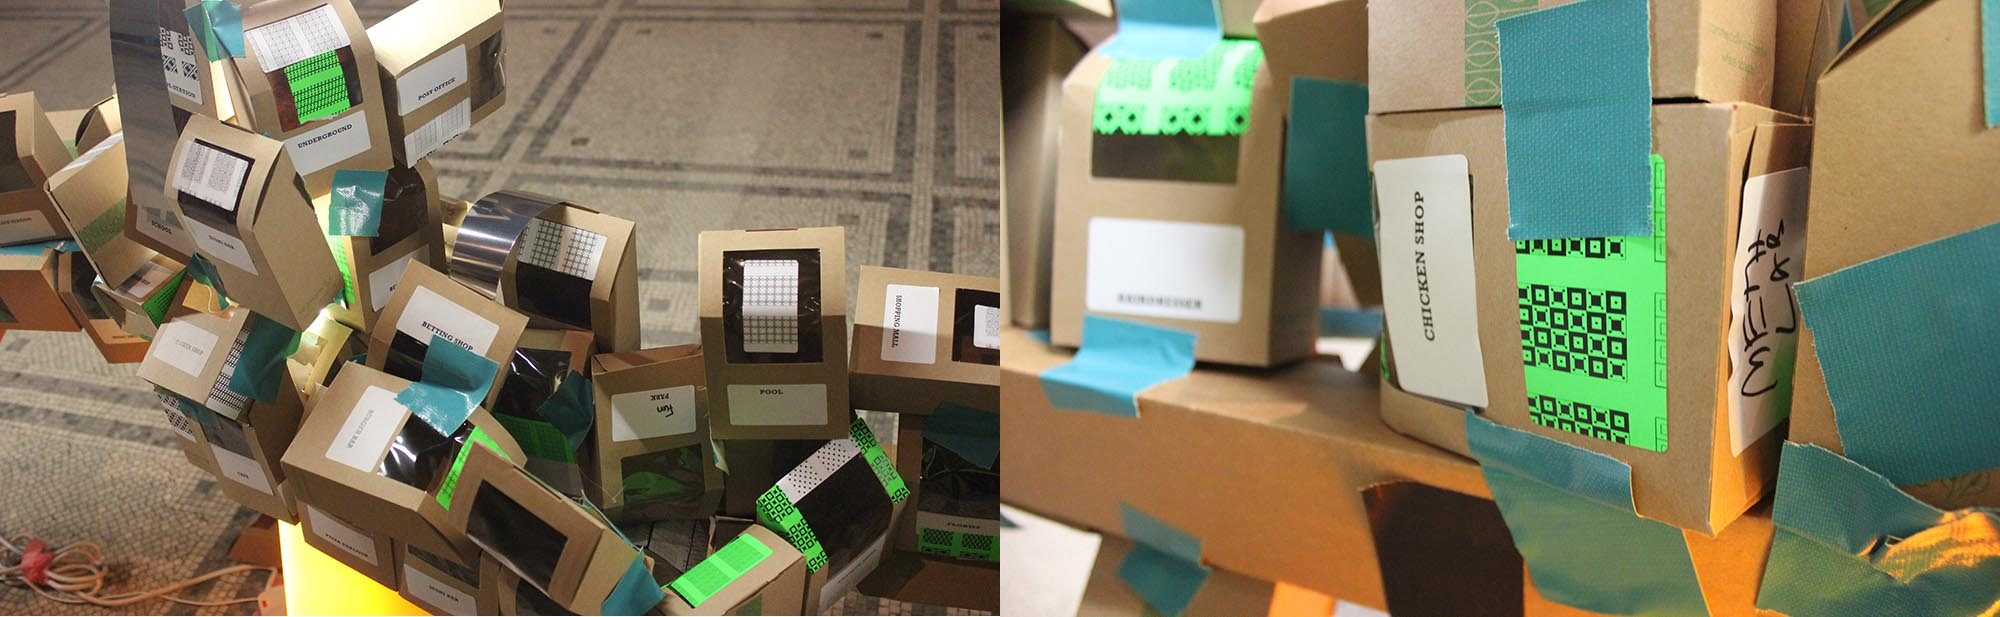 Details of the 'floating city' activity built at the V&A. Photograph: Wilson Aguirre Jaramillo